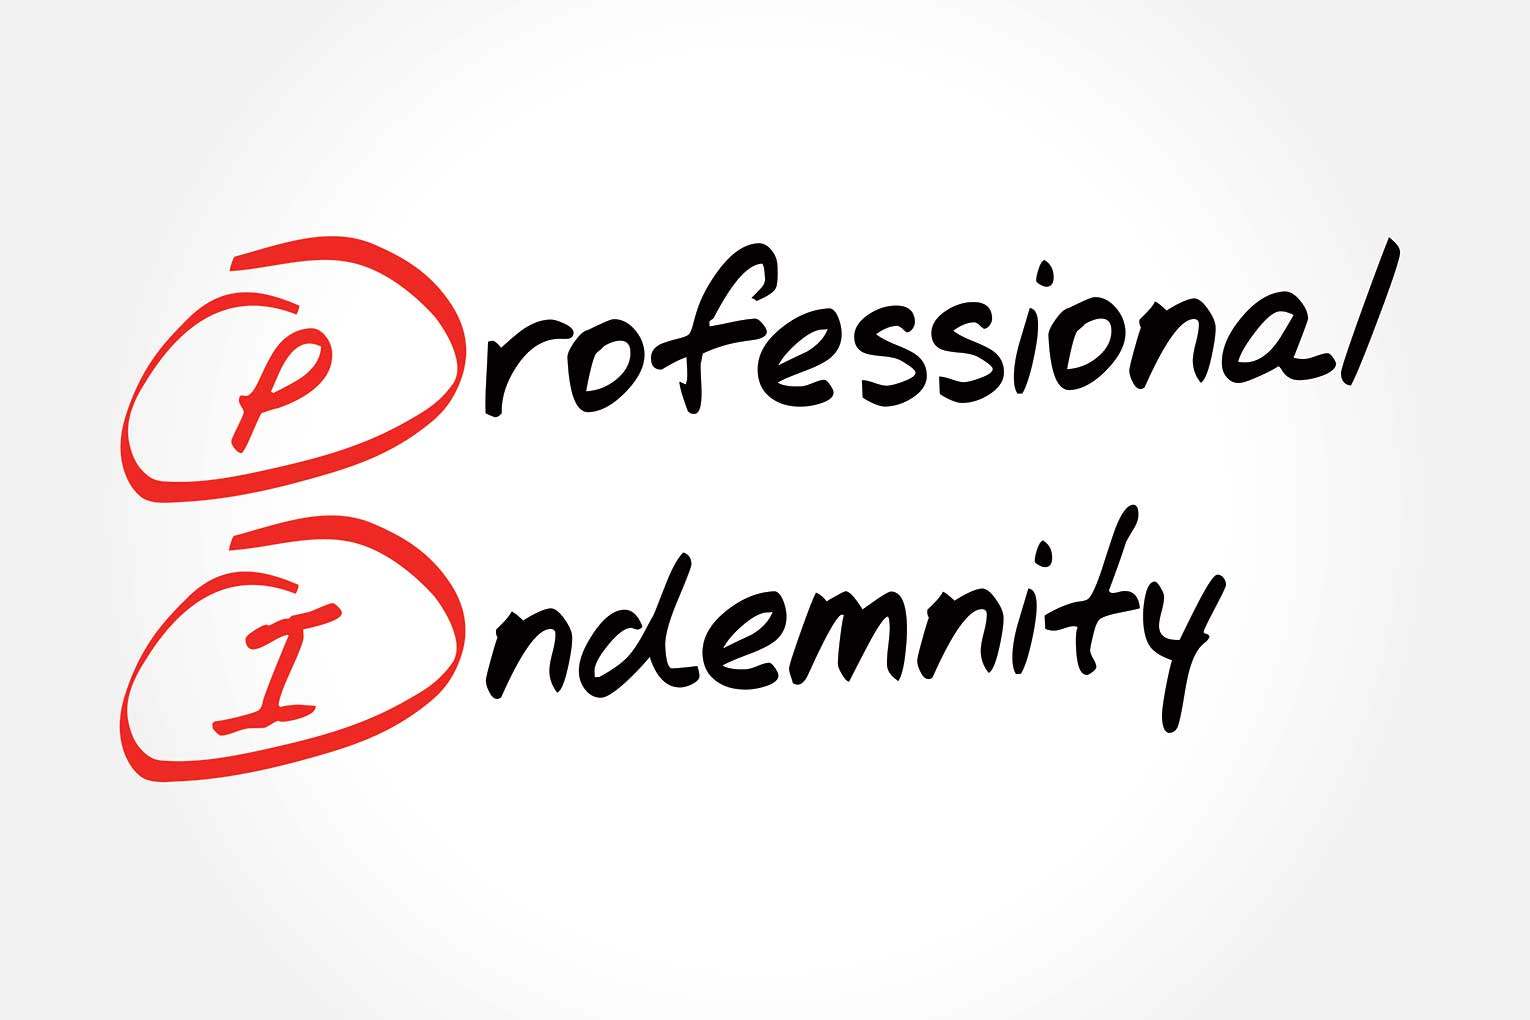 Network reduces professional indemnity insurance excess ...